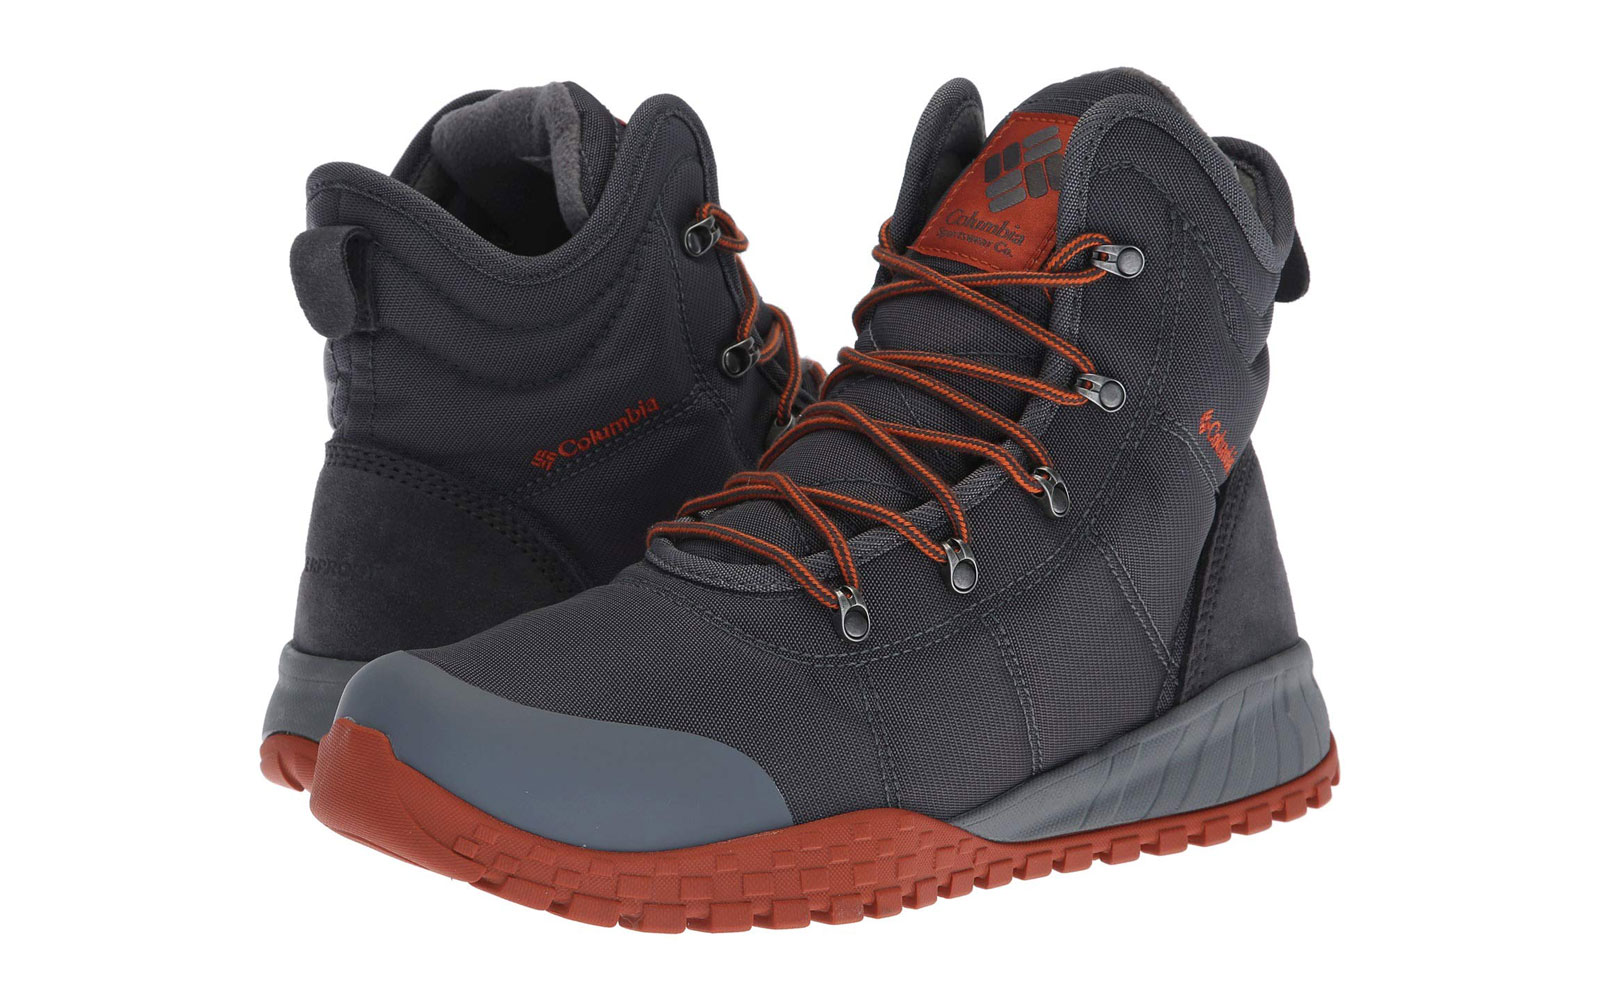 Men's Black, Grey, and Red Snow Boots